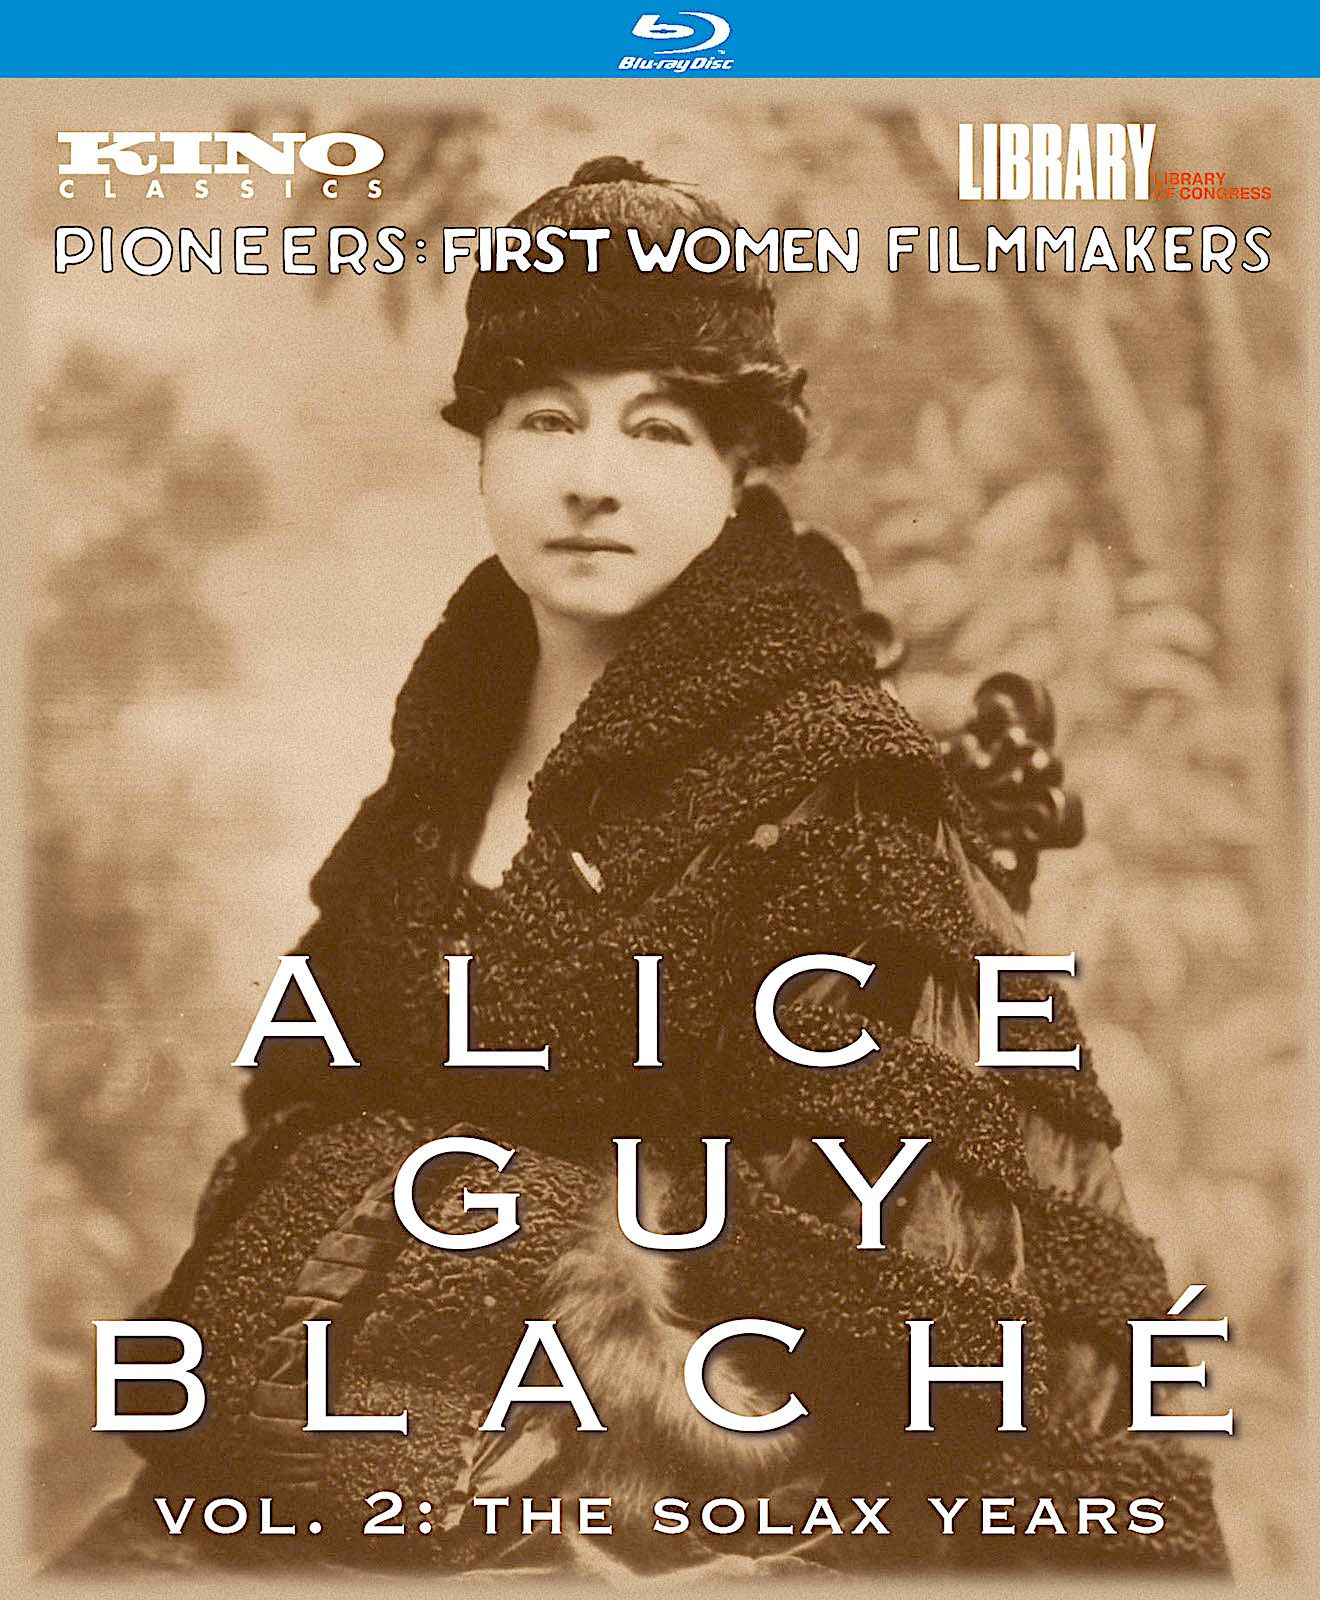 ALICE GUY BLACHÉ VOL. 2 THE SOLAX YEARS BLURAY (KINO